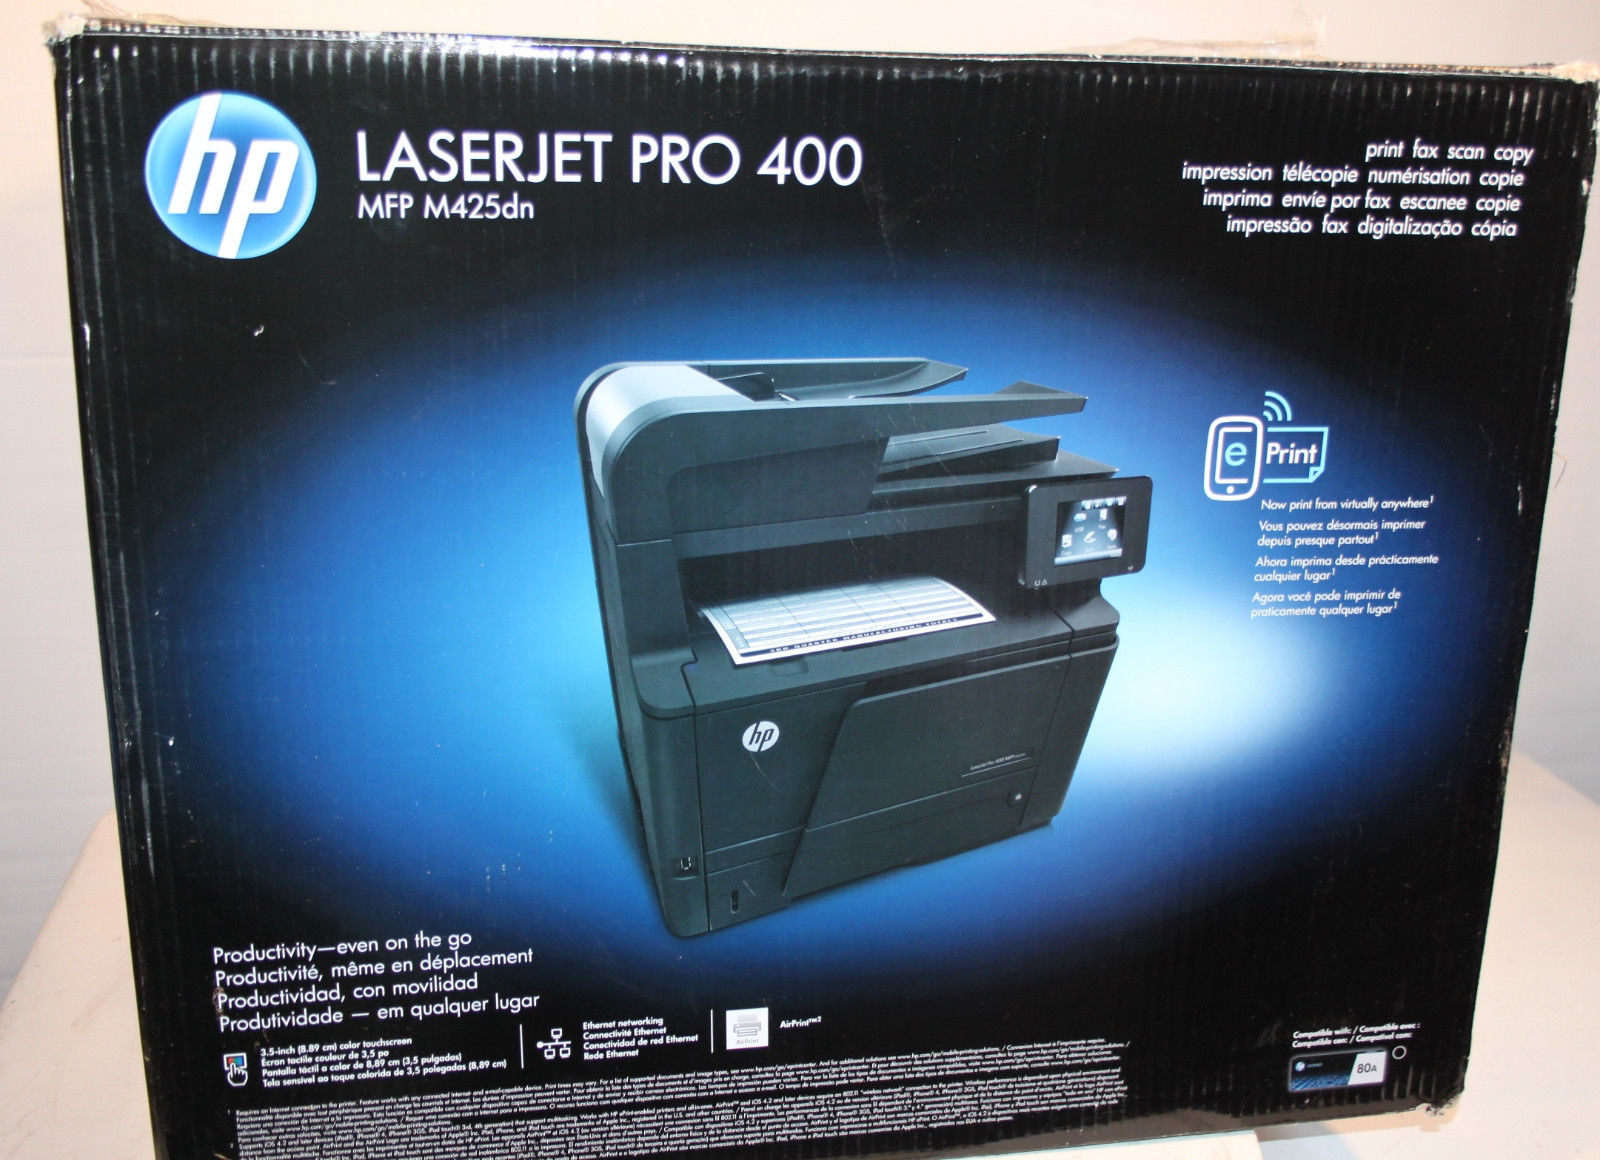 LASERJET 400 MFP M425 WINDOWS 8 DRIVERS DOWNLOAD